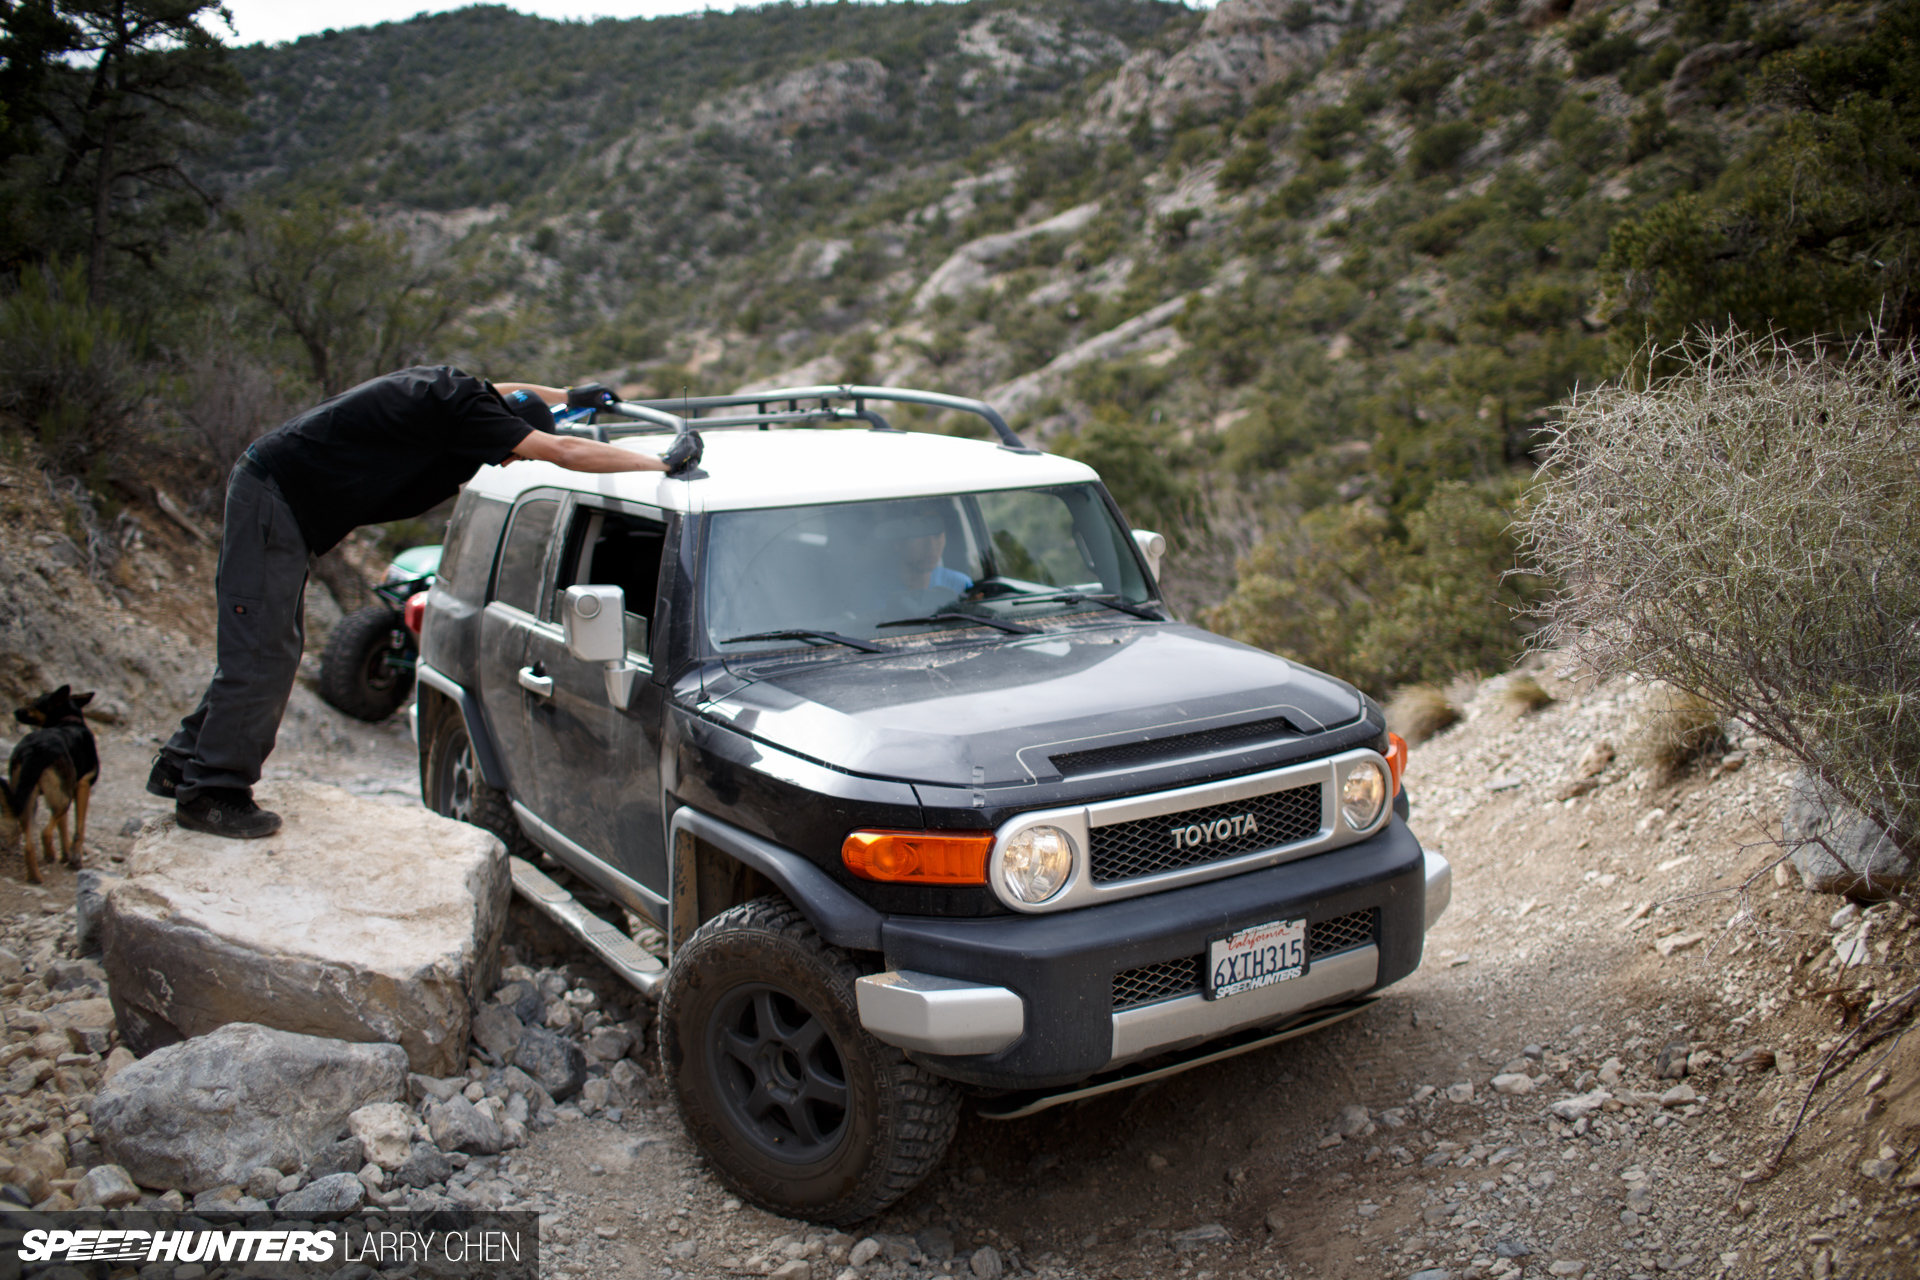 Project Fj Cruiser Chasing Off Road Racing Anything Cars The Fuel Filter Location Larry Chen Speedhunters Toyota Car 35